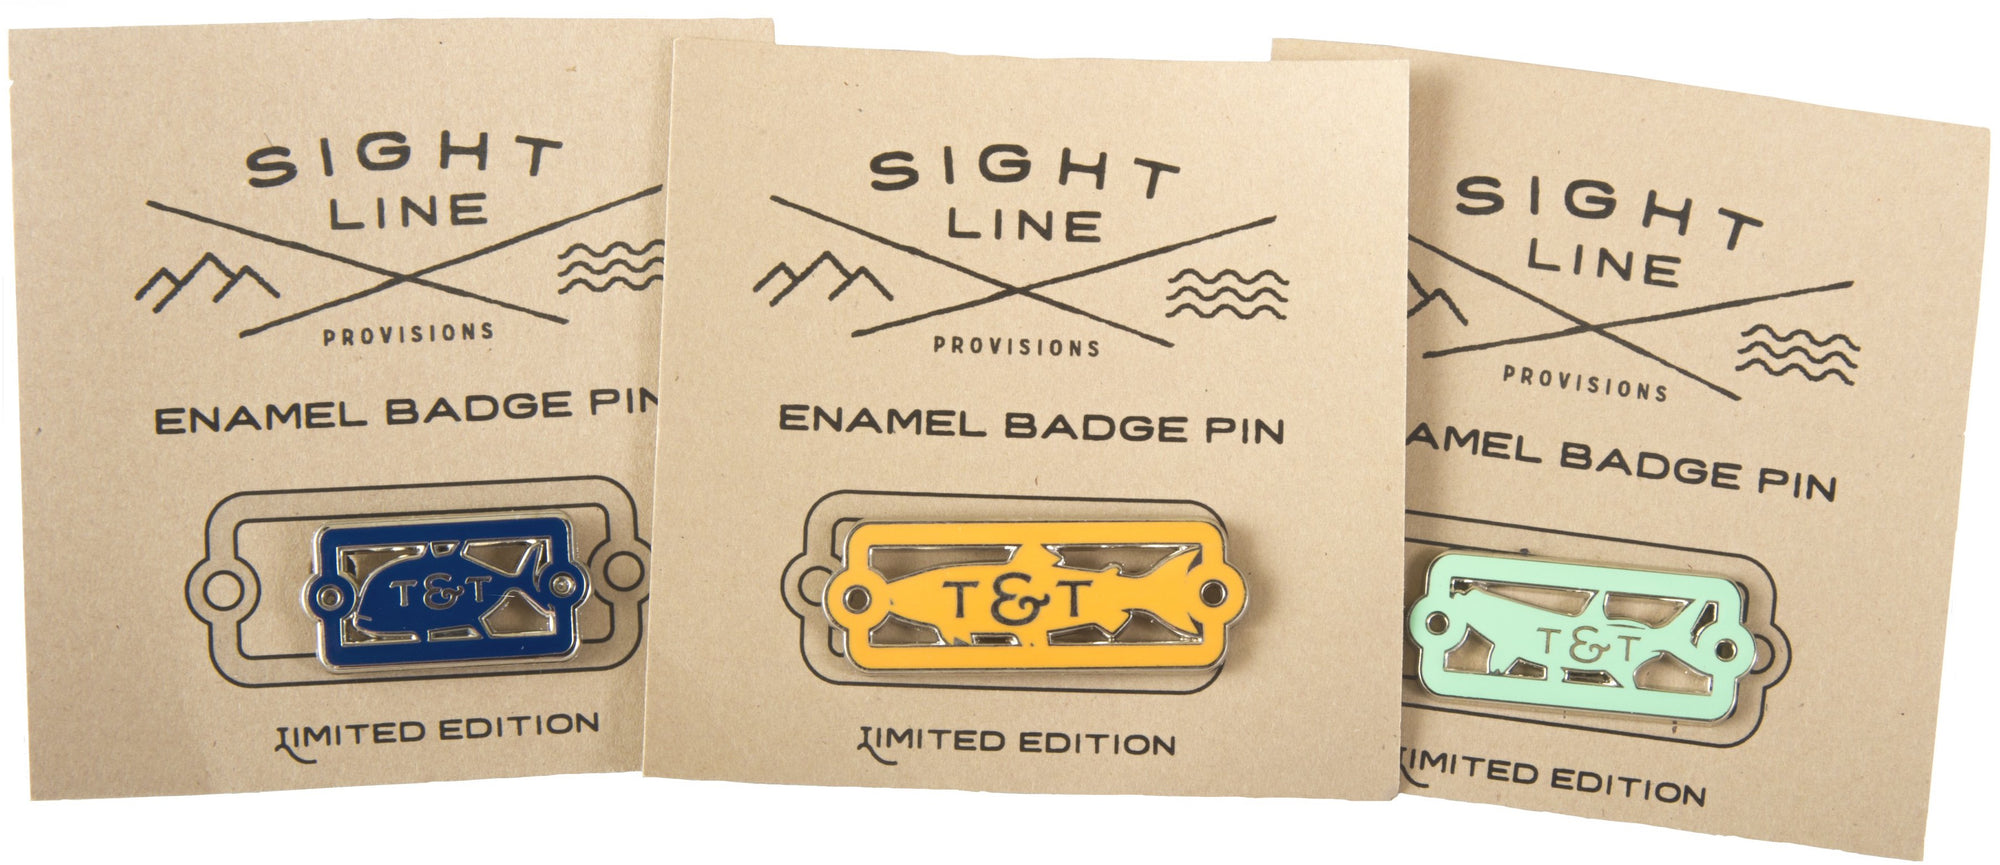 T&T X Sight Line Provisions Pins